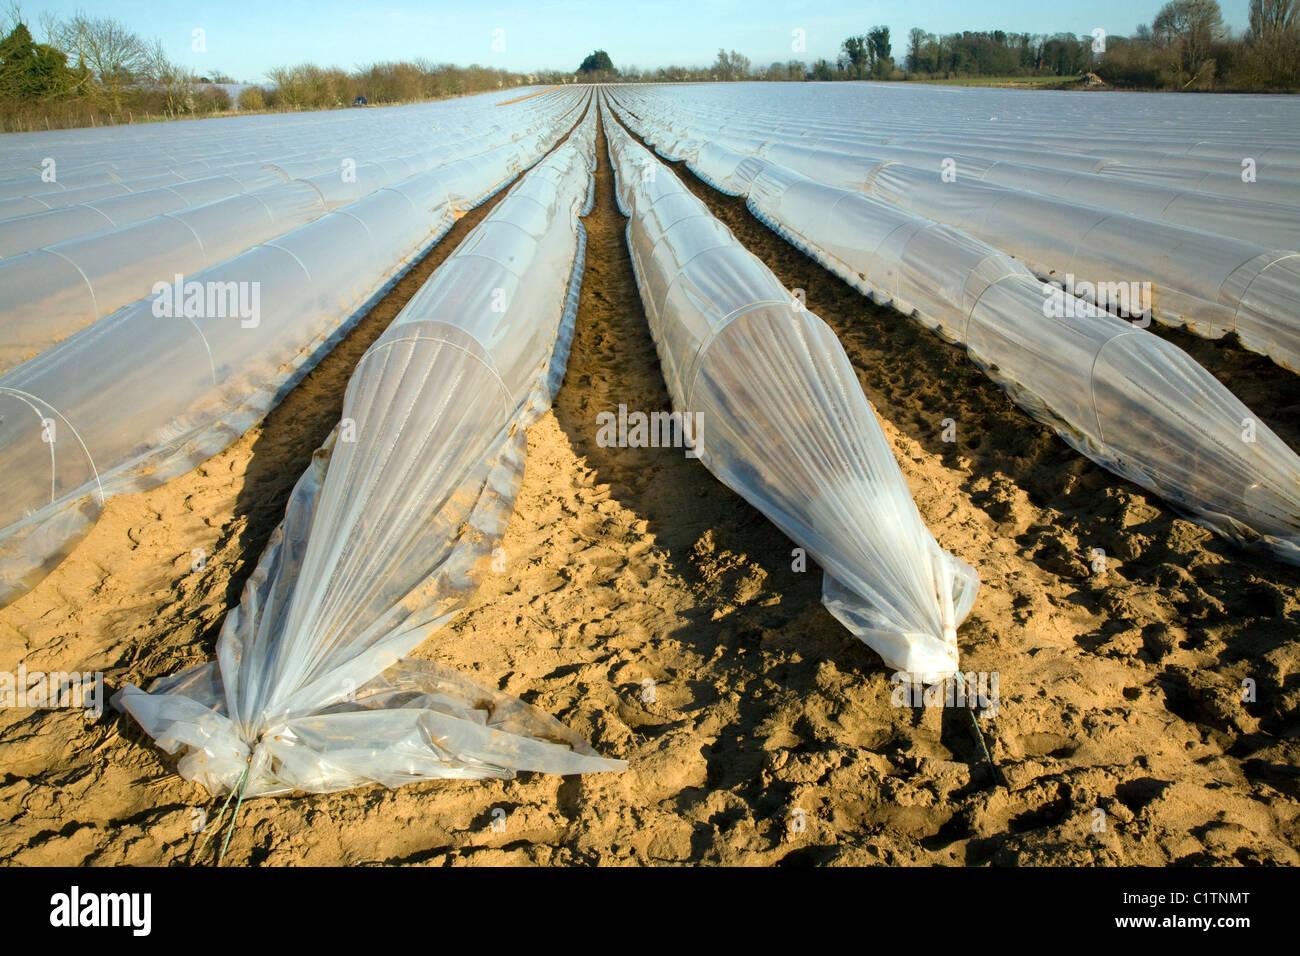 Polythene plastic sheeting covering vegetable crop field - Stock Image